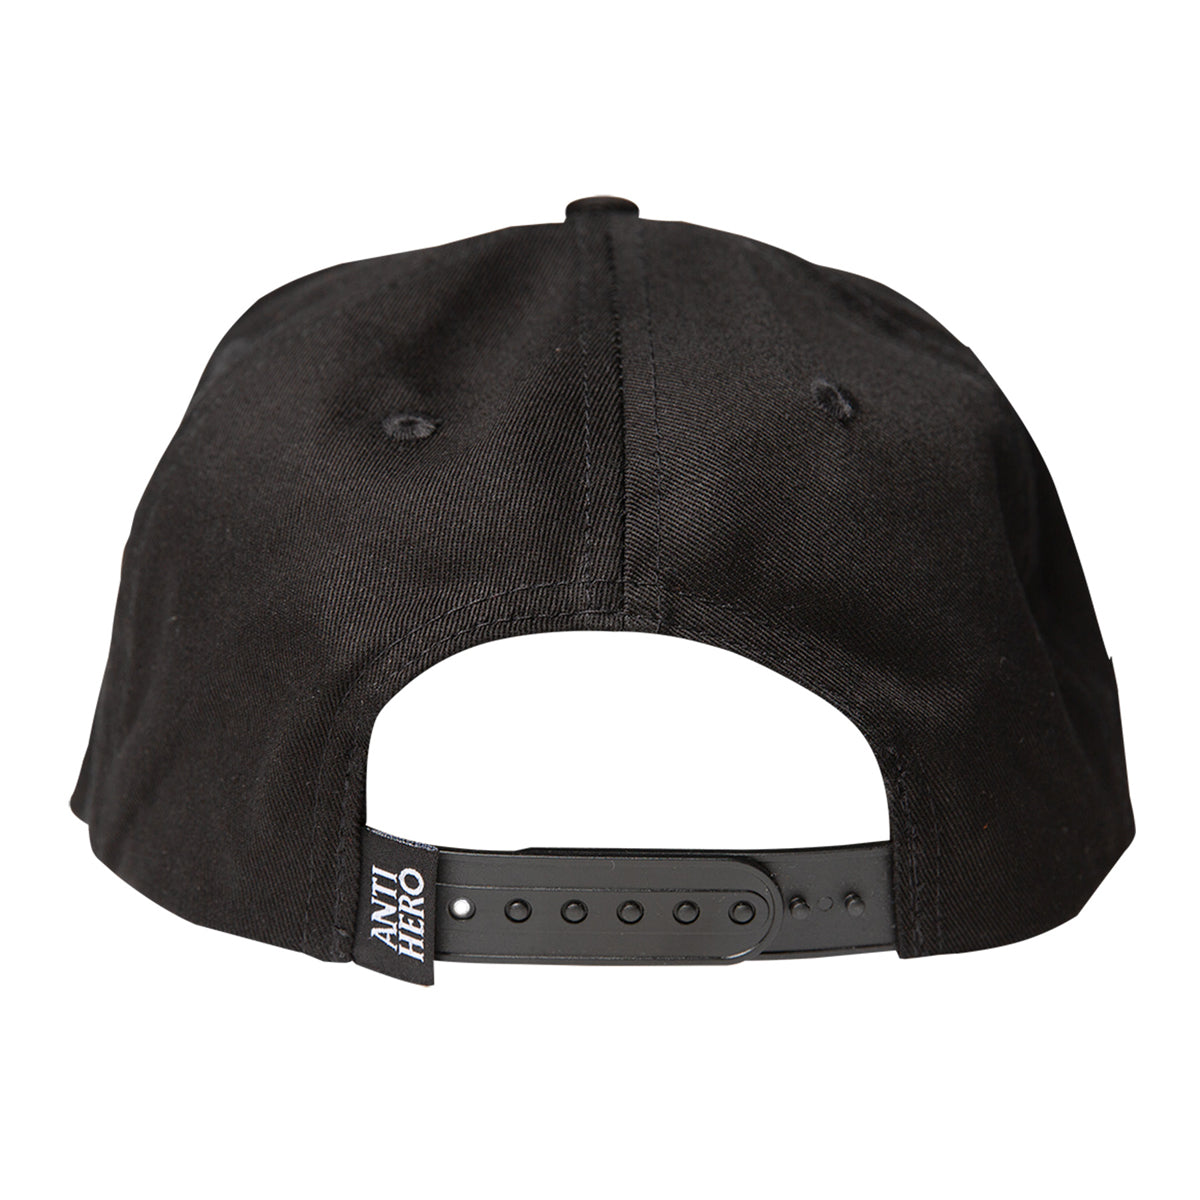 Anti-Hero Reserve Patch Snapback Black/Olive